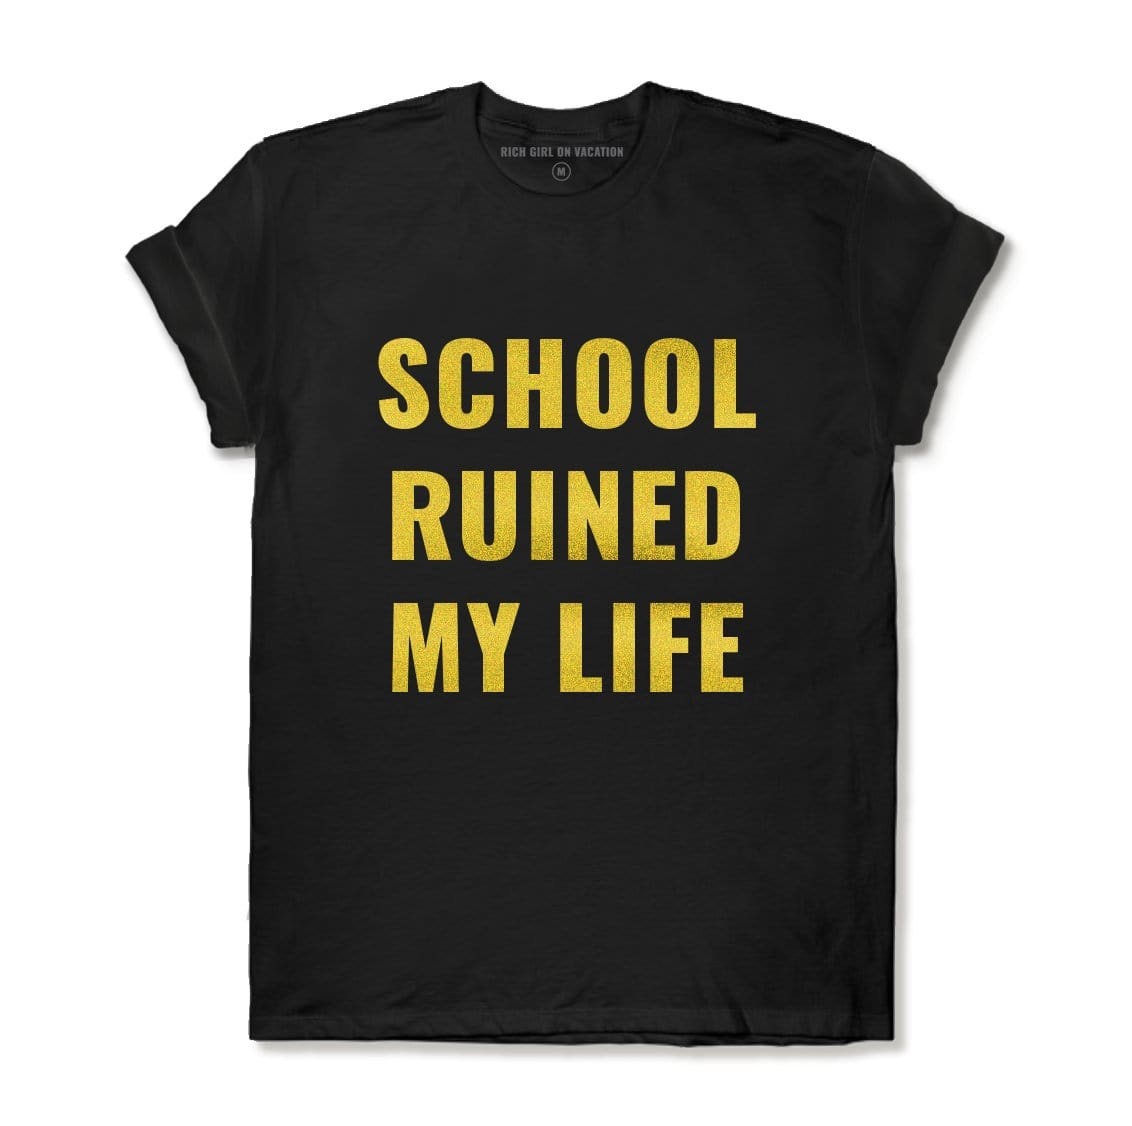 SCHOOL RUINED MY LIFE - BLACK